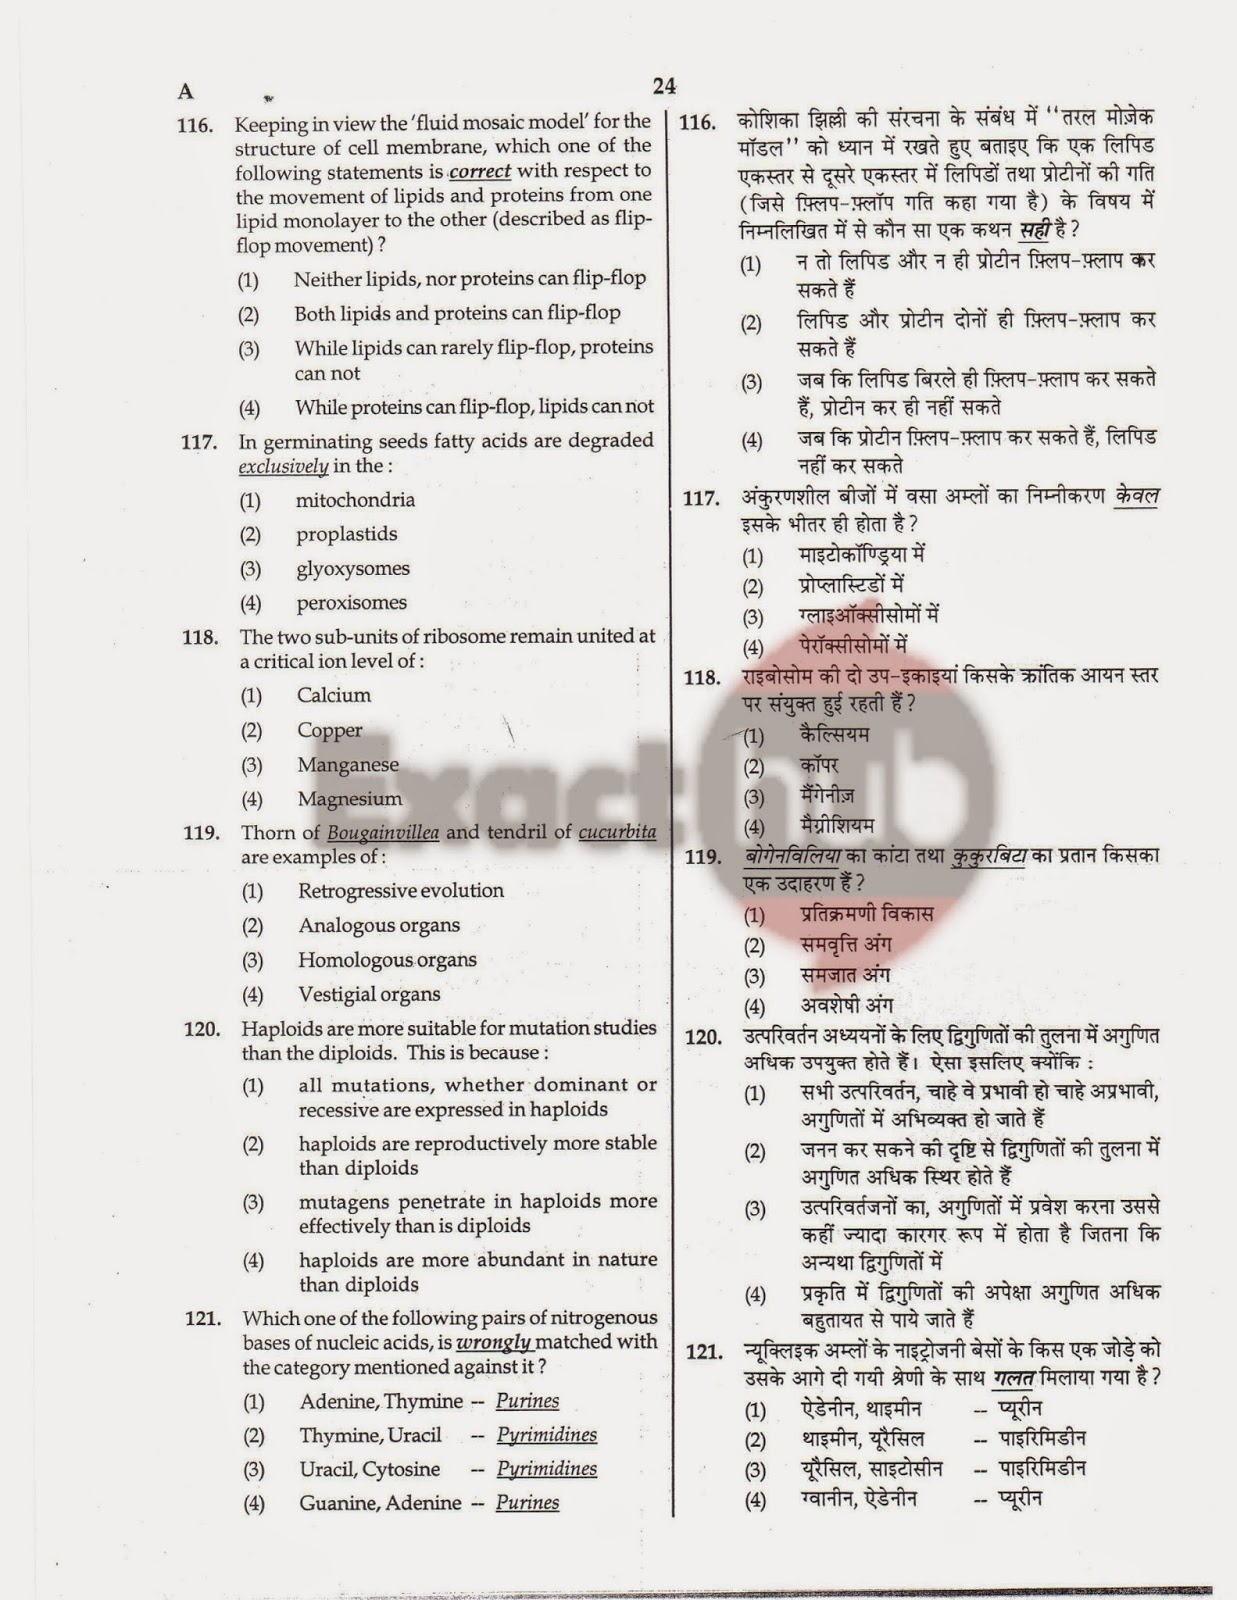 AIPMT 2008 Question Paper Page 24